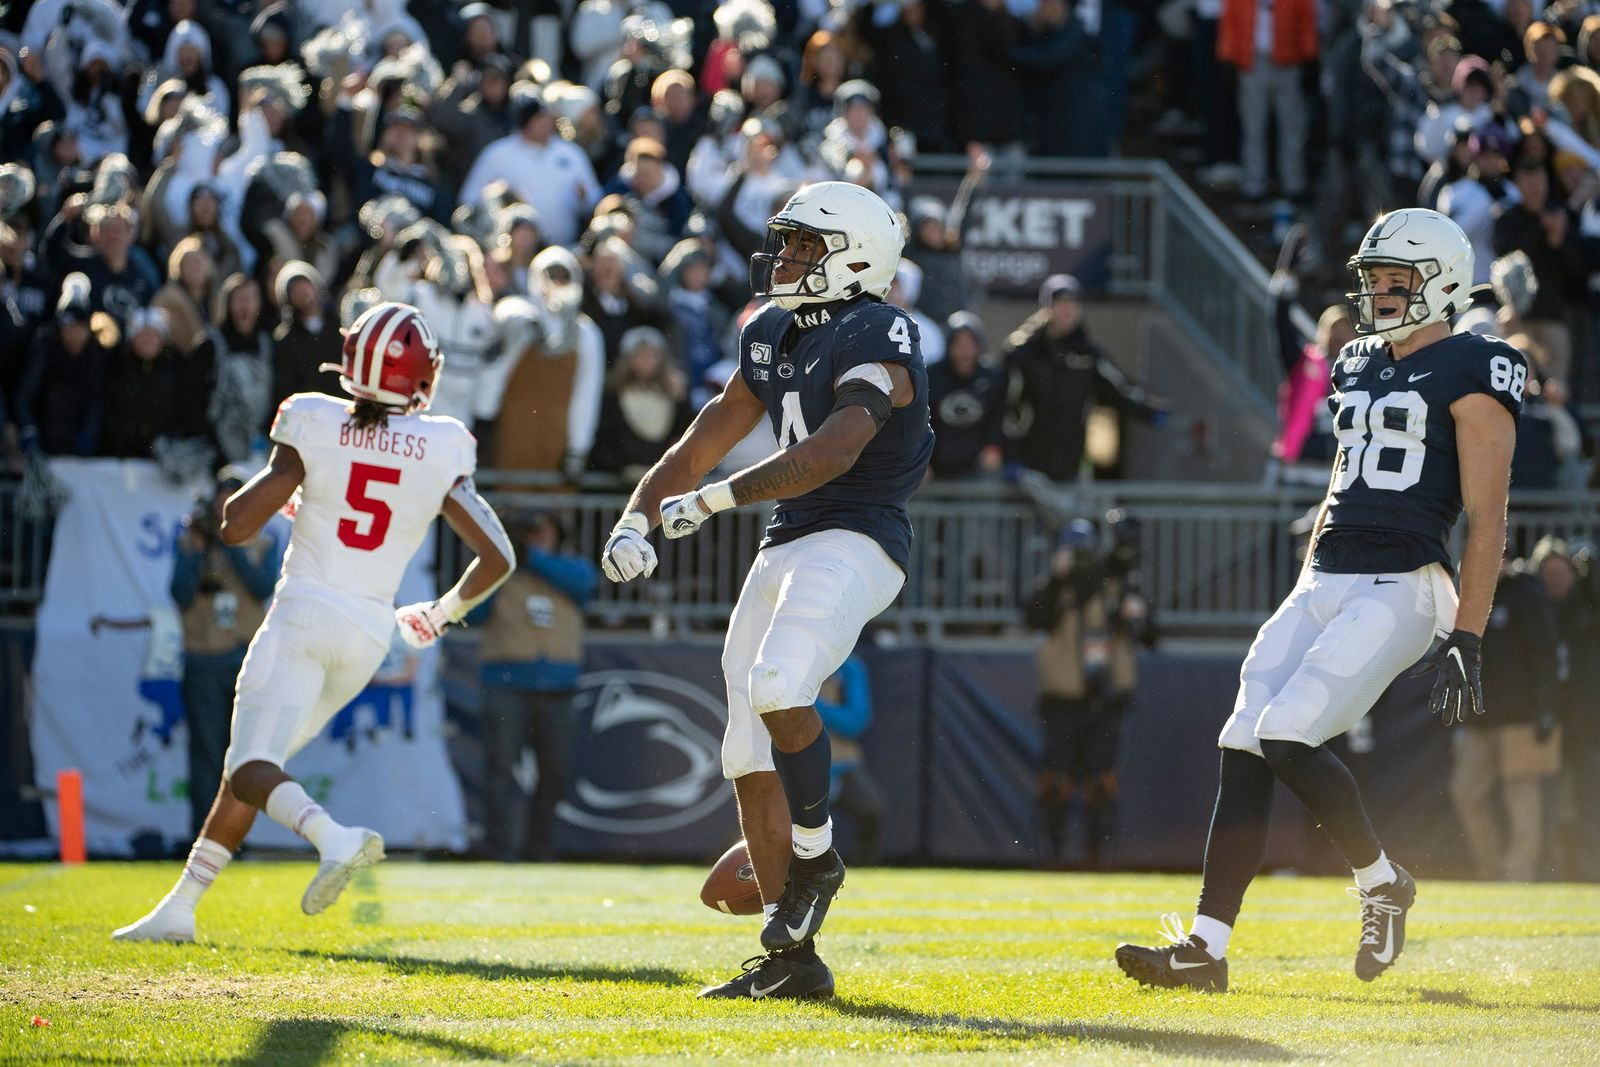 Penn State running back Journey Brown (4) celebrates in front of Indiana defensive back Juwan Burgess (5) after scoring on a 35-yard touchdown in the third quarter of an NCAA college football game in State College, Pa., on Saturday, Nov.16, 2019. Penn State defeated 34-27. (AP Photo/Barry Reeger)